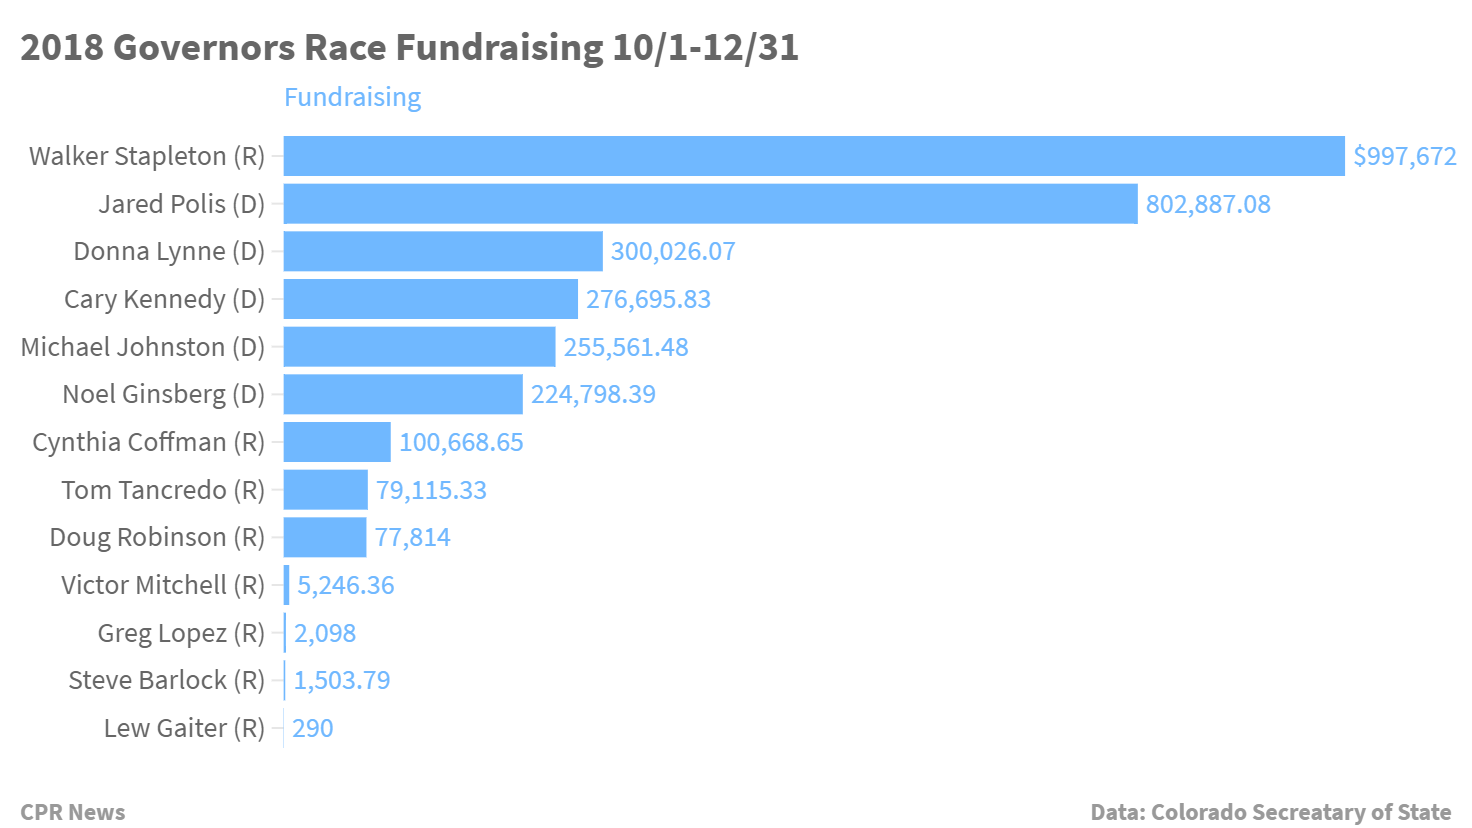 Chart: 2018 Governors Race Fundraising 10/1-12/31